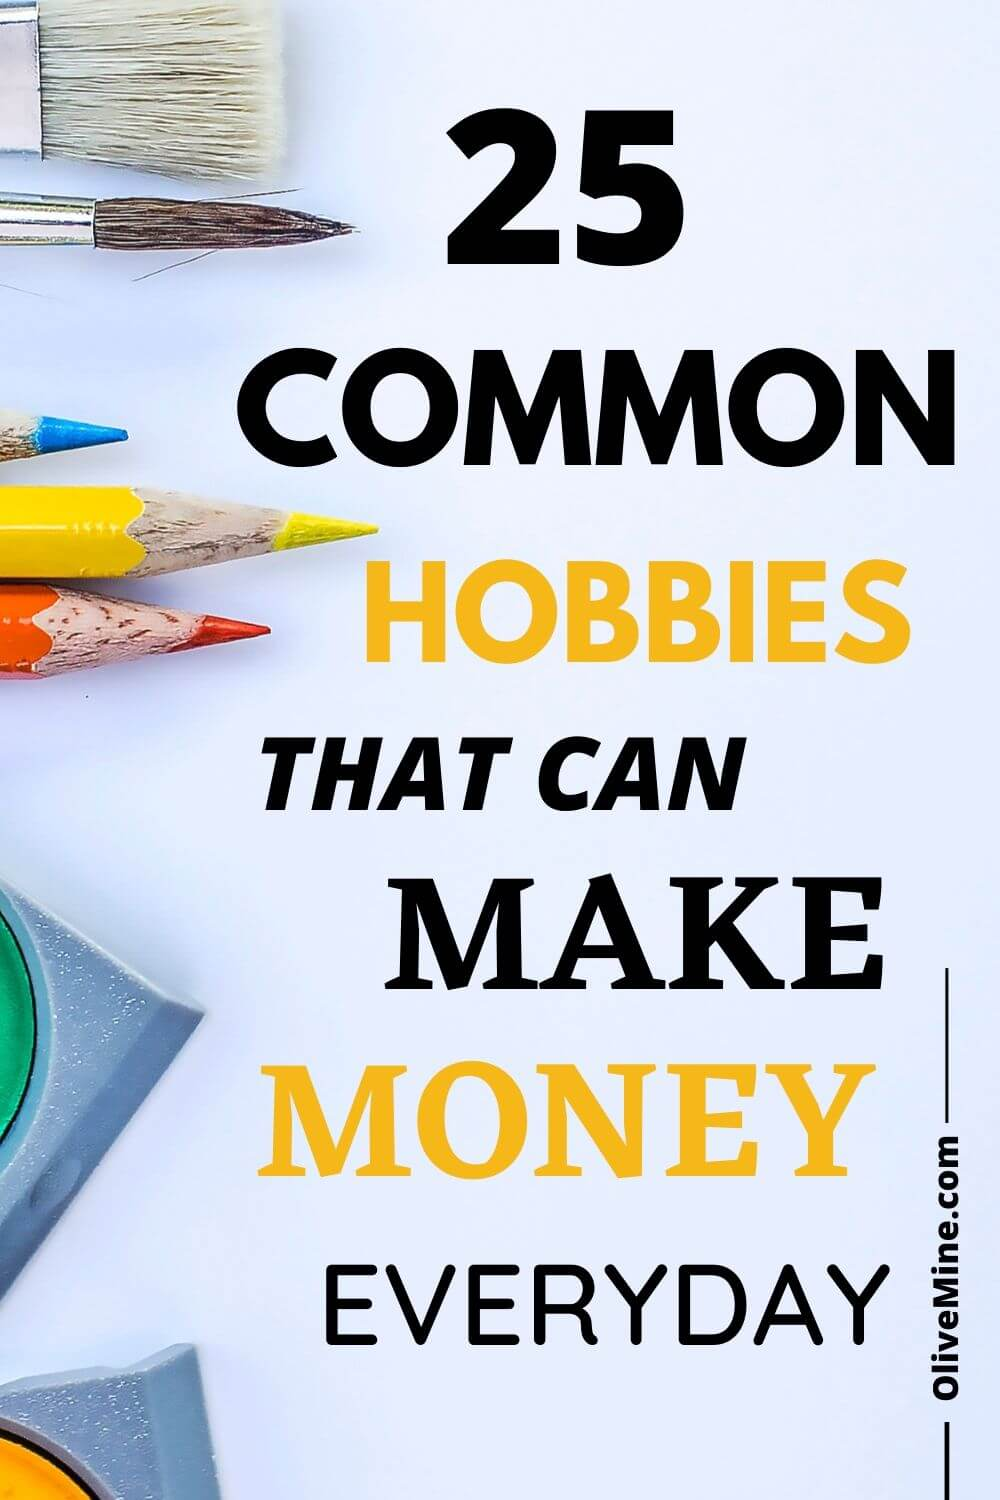 Hobbies that can make money Everyday